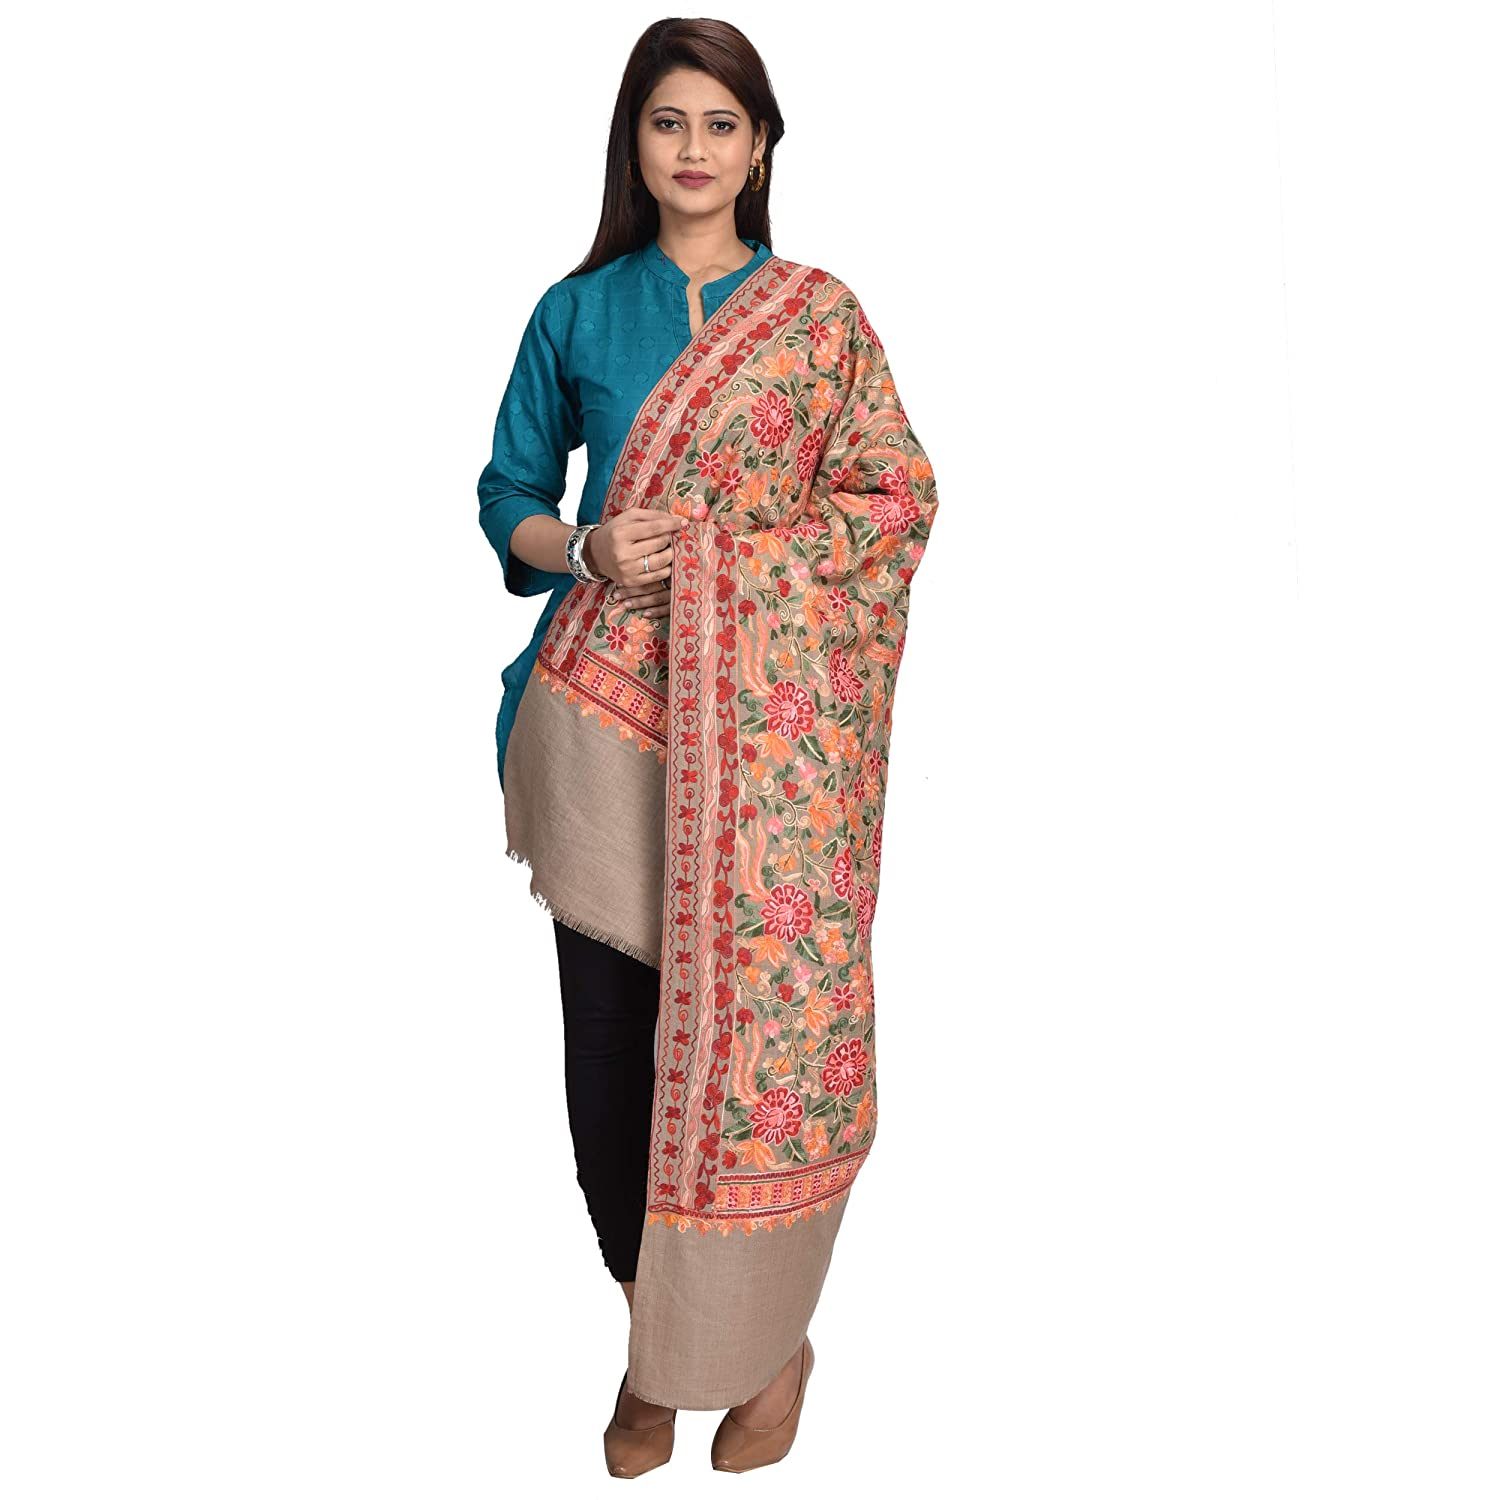 SWI Stylish Women's Embroidered Shawl Wrap in Wool Rich Fabric, Aari Pattern in Staple Thread, Size 40x80 Inches